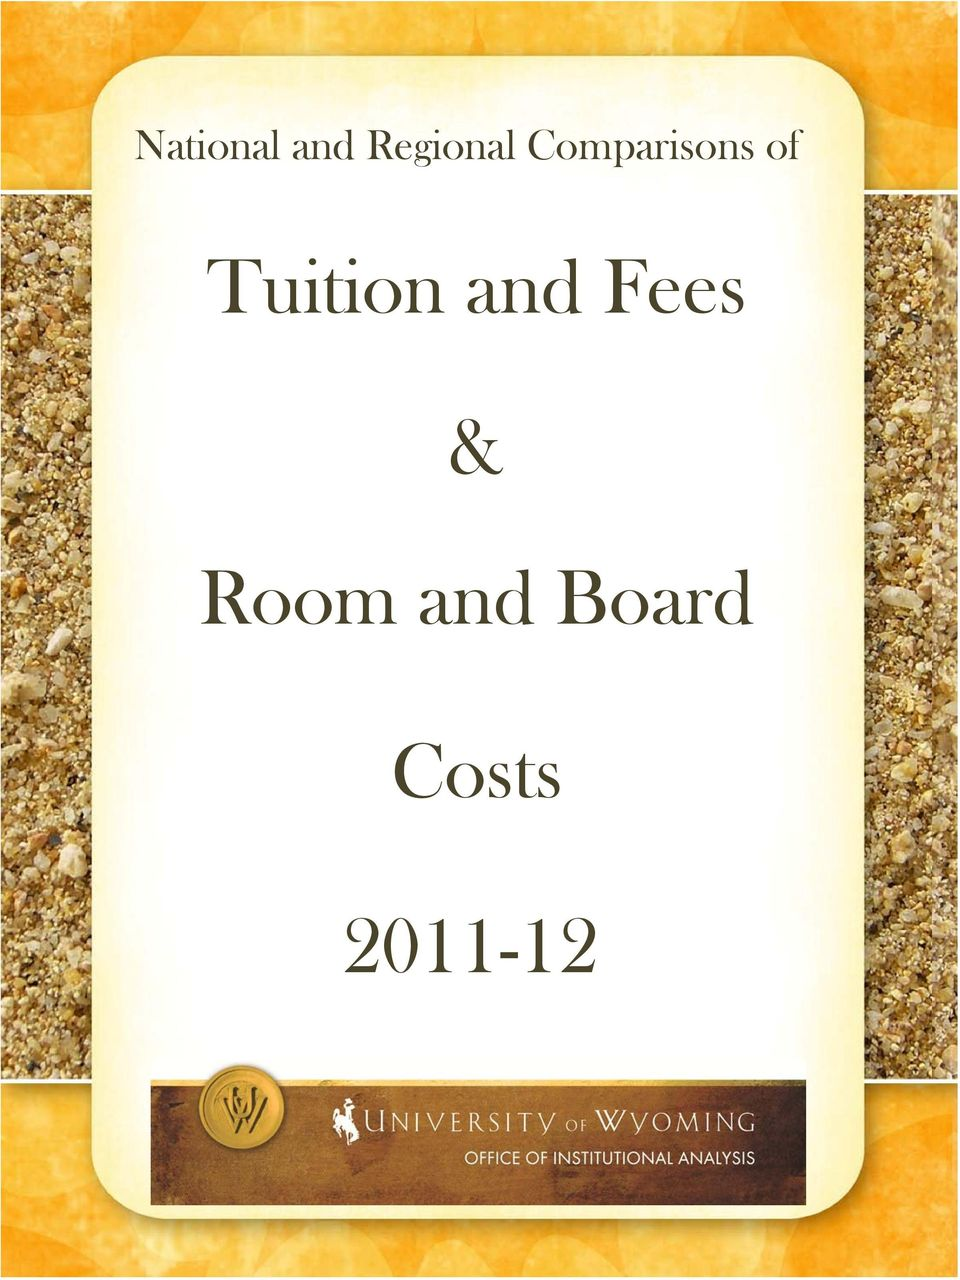 of Tuition and Fees